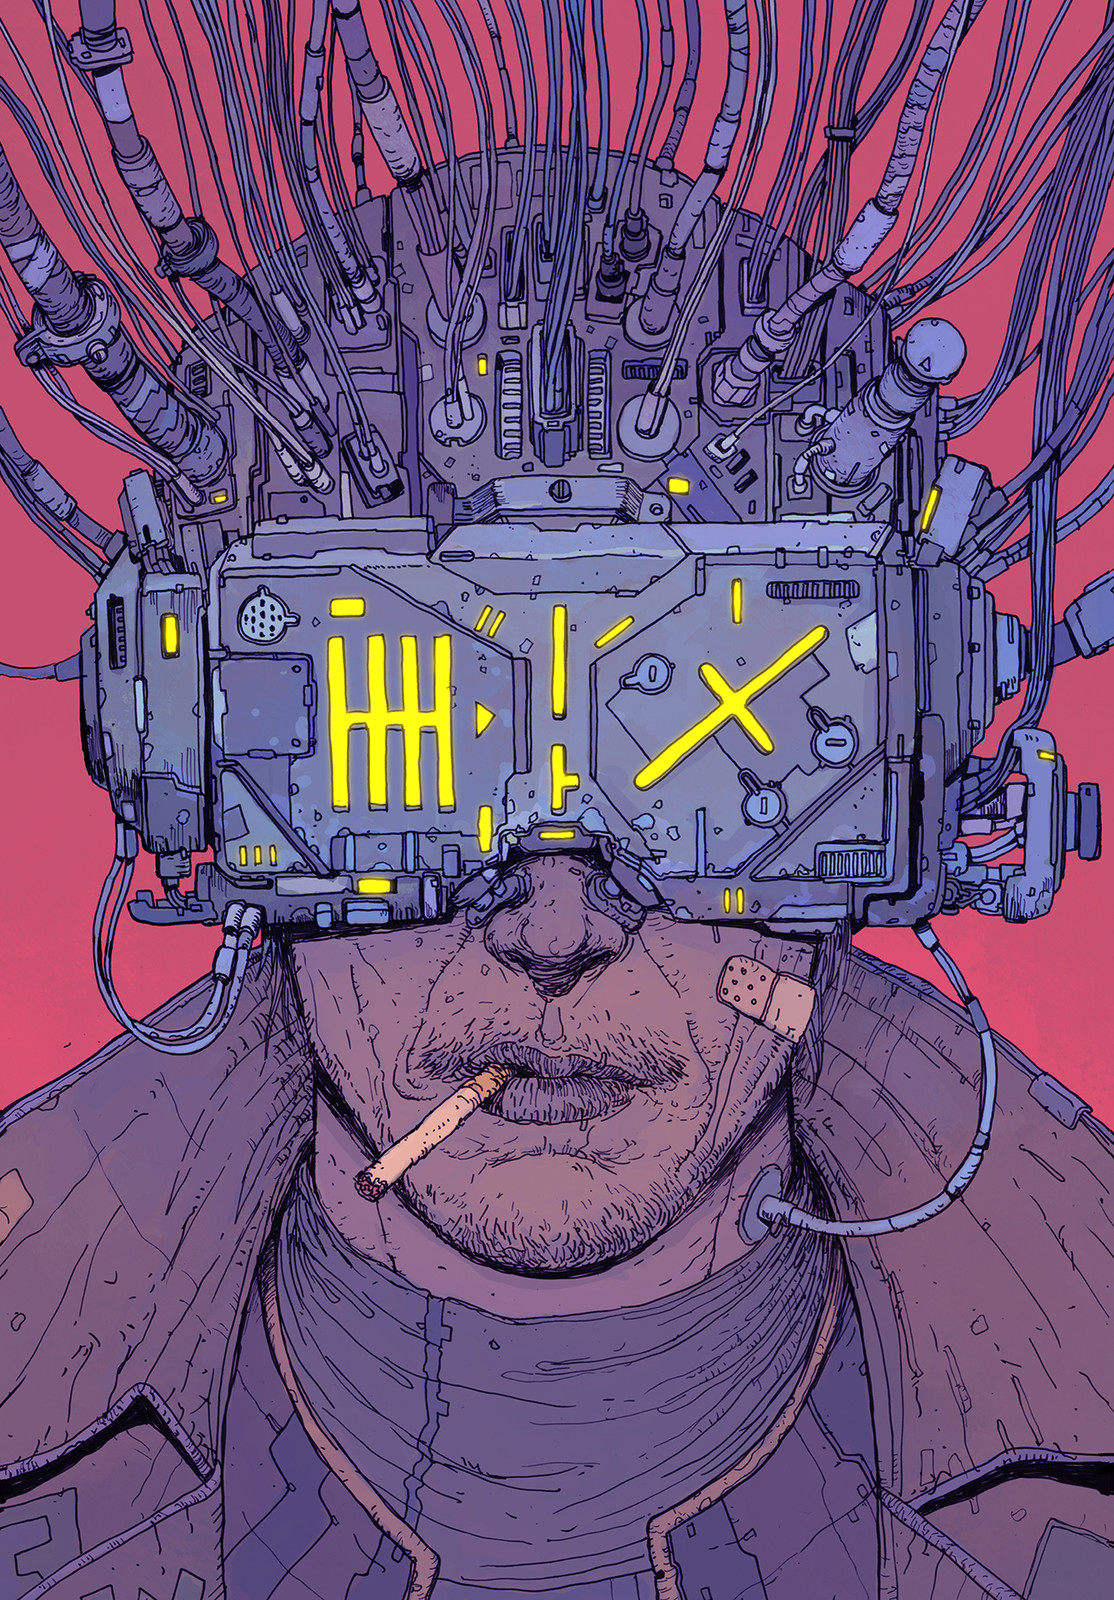 Book cover for the Brazilian edition of Neuromancer, published by Aleph Editora